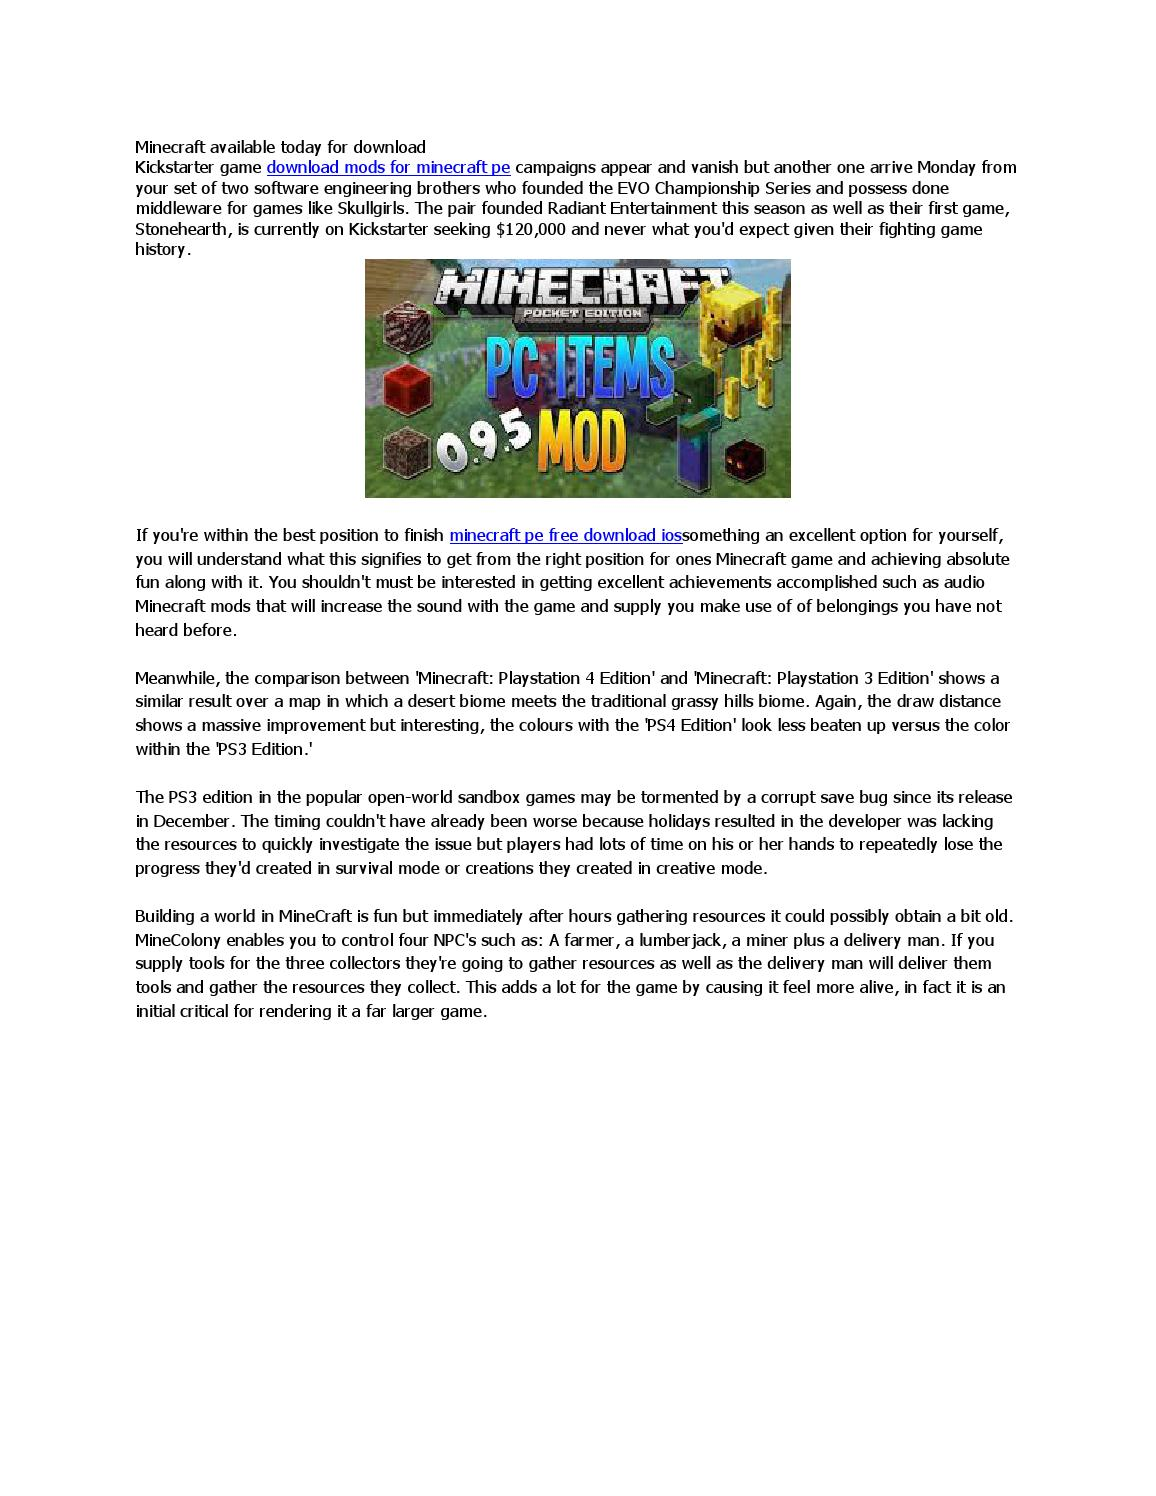 Minecraft available today for download by chanhbx - issuu